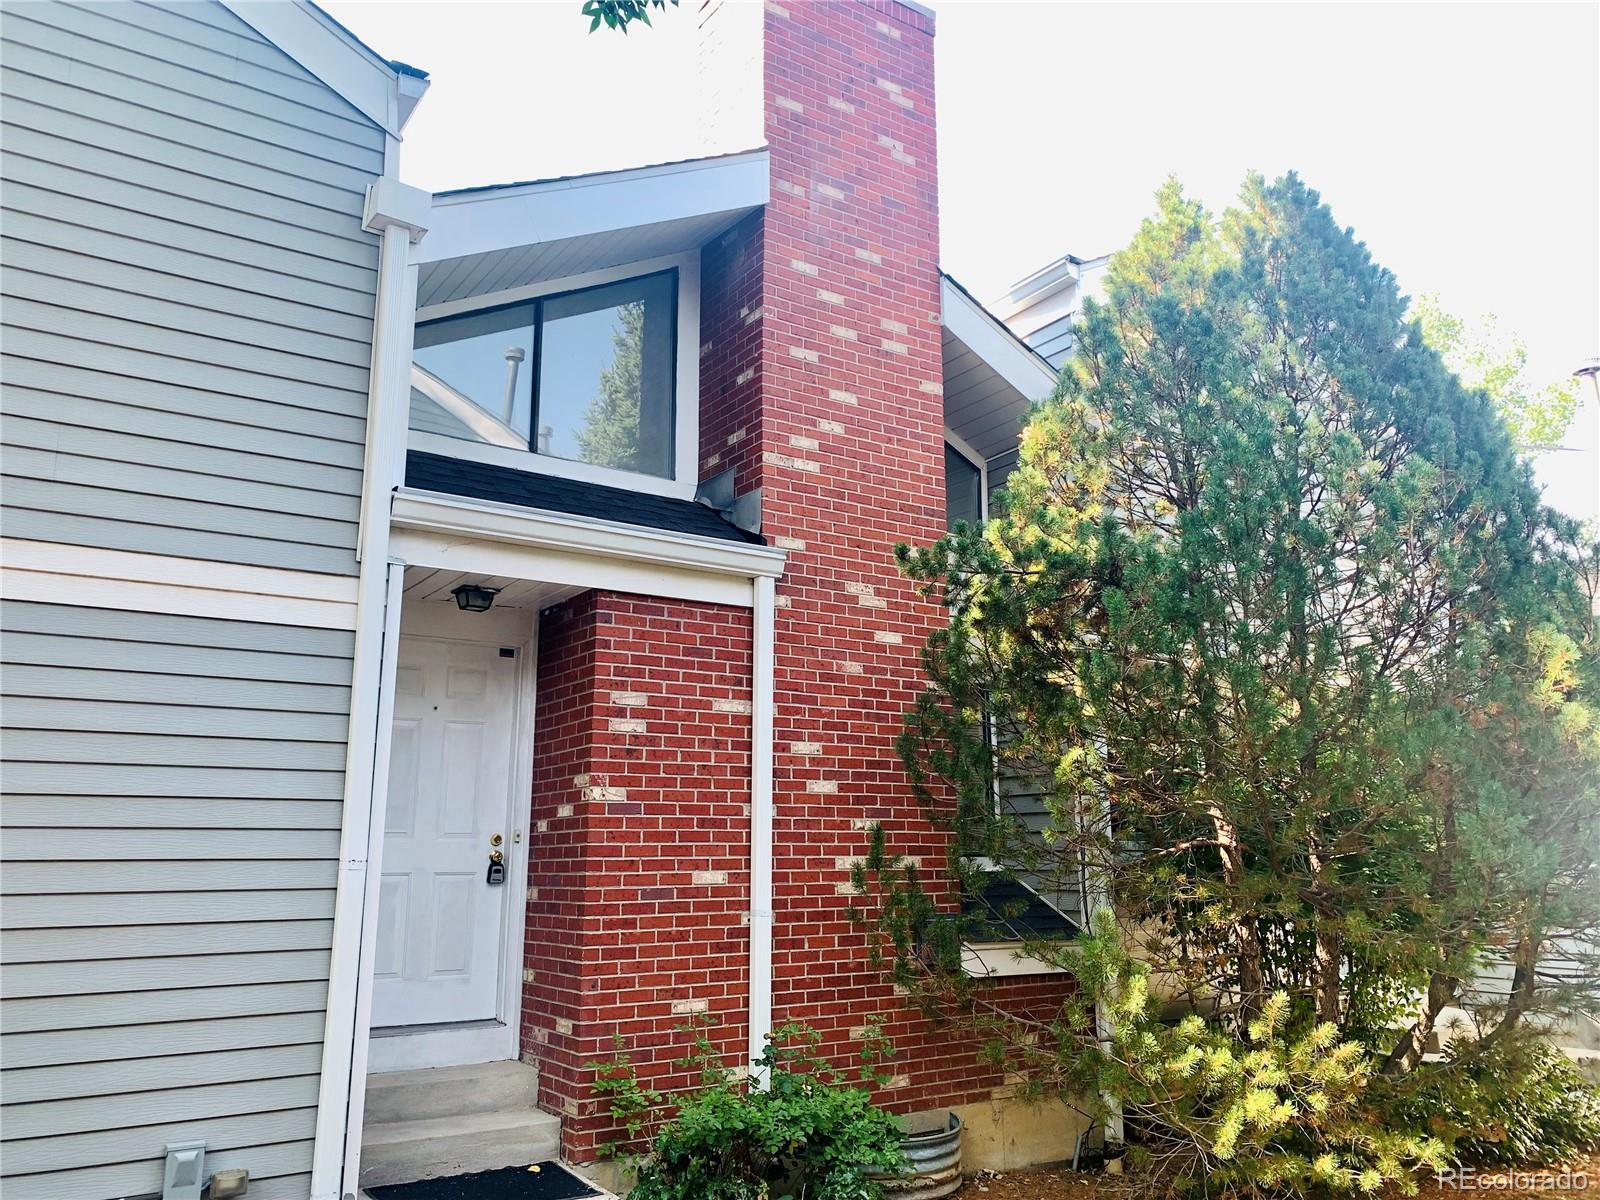 If you would like to be only a few minutes away from the golf course, this 1 bedroom, 1 bathroom townhome in the Chesapeake Townhome subdivision is for YOU! Featuring a large living room with high, vaulted ceilings and a wood burning fireplace and a balcony/deck off of the dining room, a SECURE under-unit 1-car garage. The loft style Master Bedroom overlooks the living room & fireplace. The washer & dryer is located in the carpeted laundry room in the basement. It also comes with a 1-year HOME WARRANTY! Located within a 2-minute drive to the Aurora Hills Golf course and the Highline Canal trail. Shopping centers within a 5 minute drive and RTD is a short 3 minute walk.  Also close to I-25 (5-minutes), downtown Denver (15-20 minutes), Highline Canal trail head, Anschutsz Medical Center, Children's Hospital, Community College of Aurora and I-225. This townhome is a great location for a healthcare professional, student or anyone who wants to be minutes from all the fun and action Denver has to offer!!!